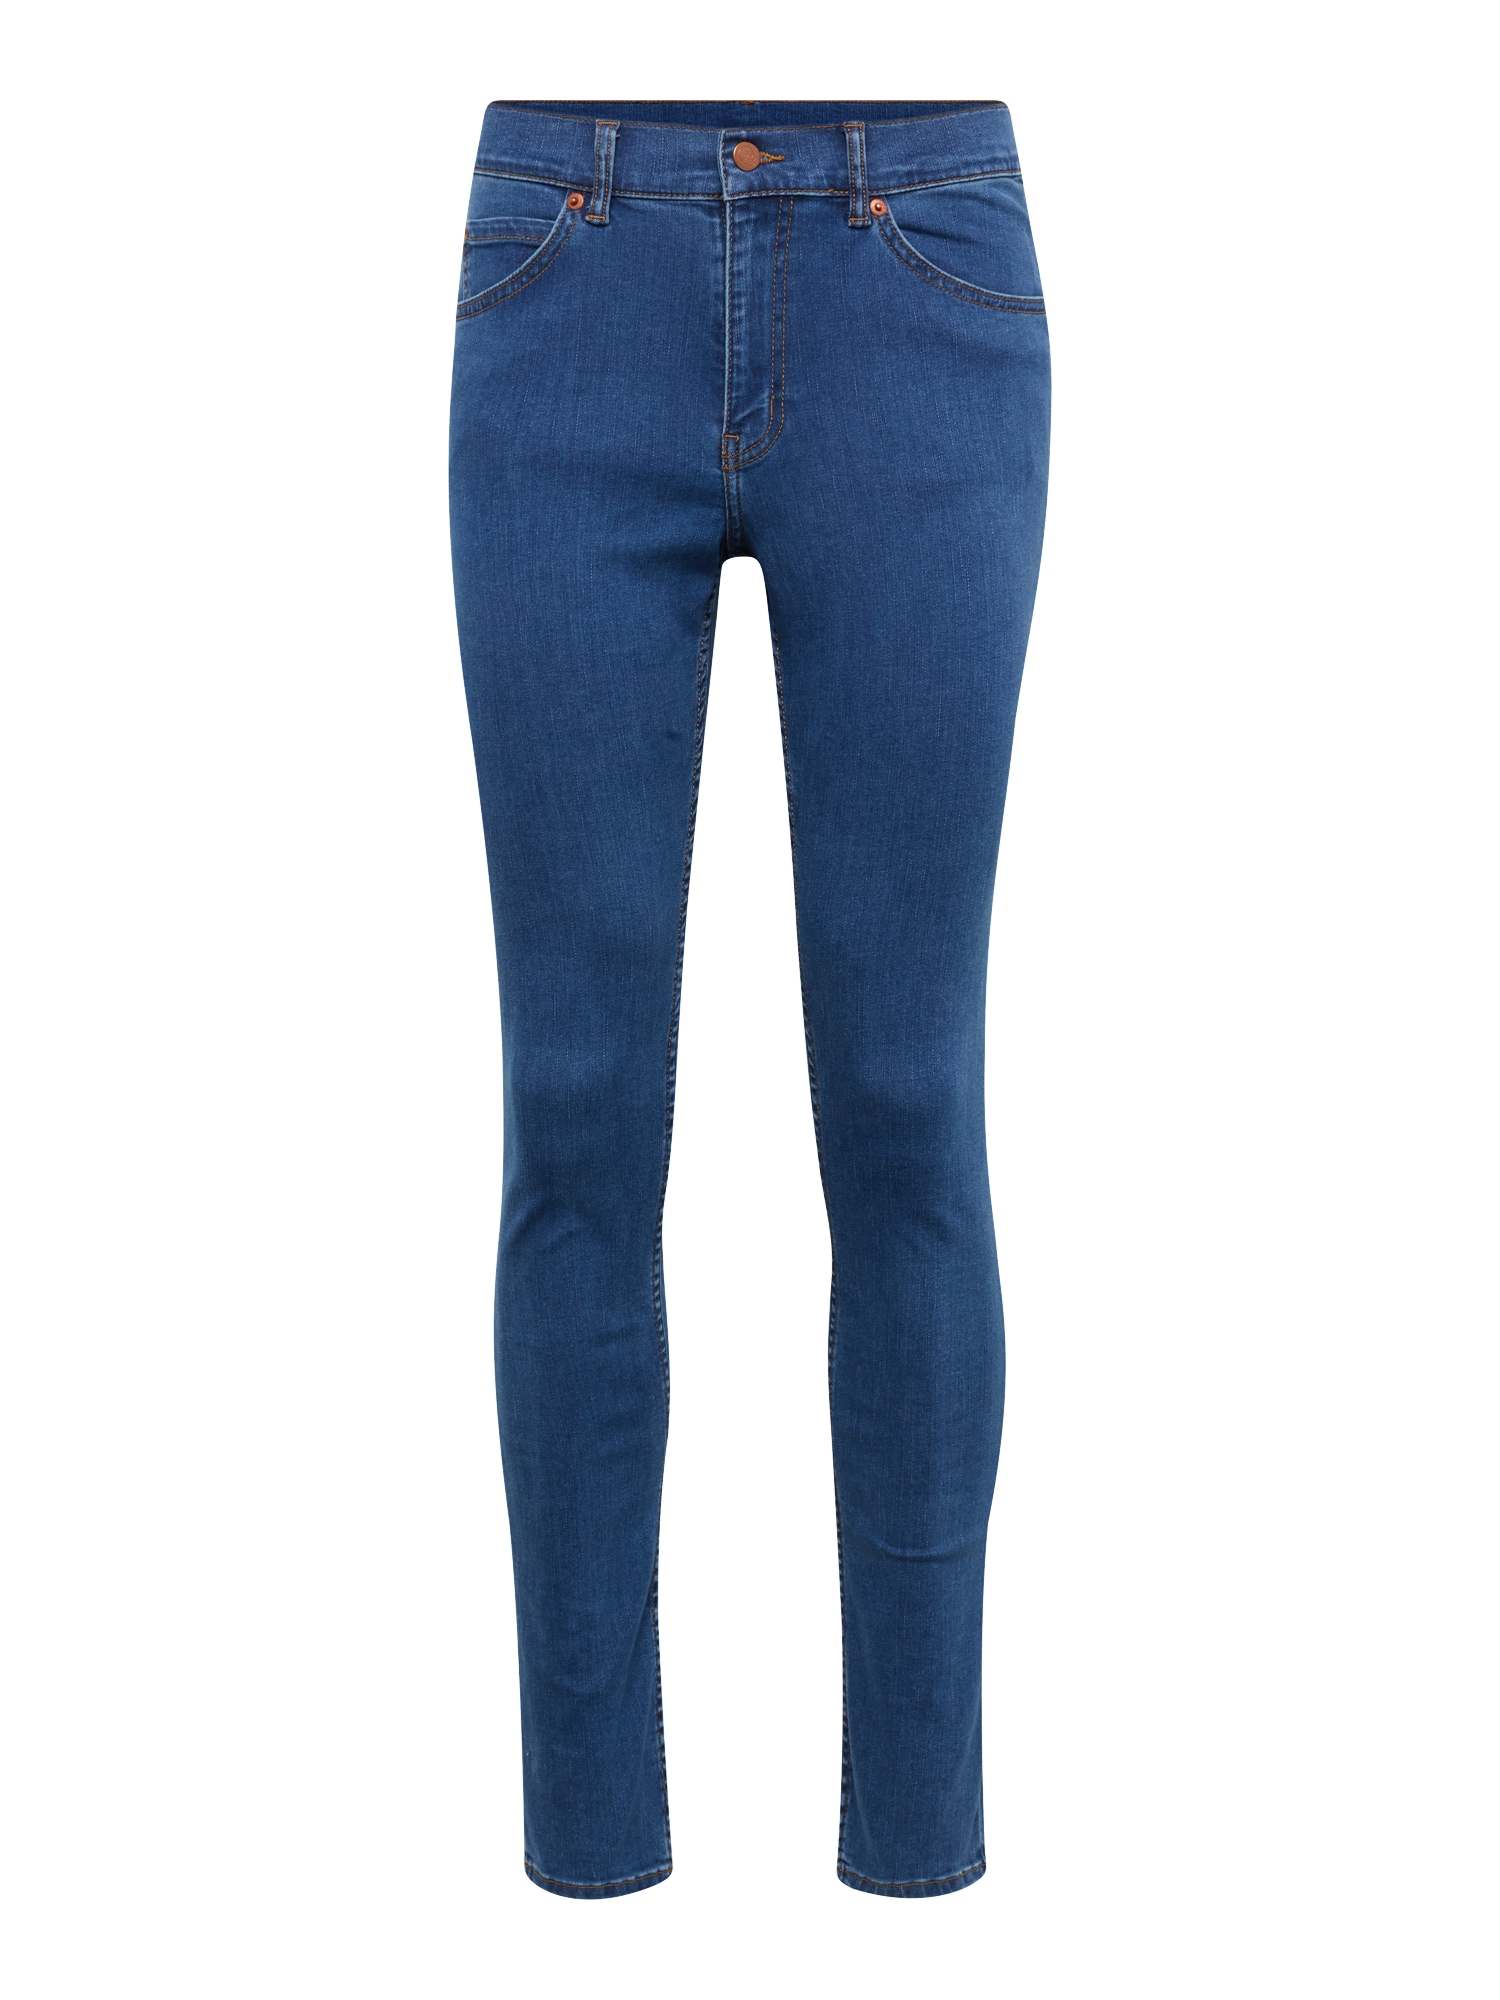 CHEAP MONDAY Heren Jeans Tight blauw denim